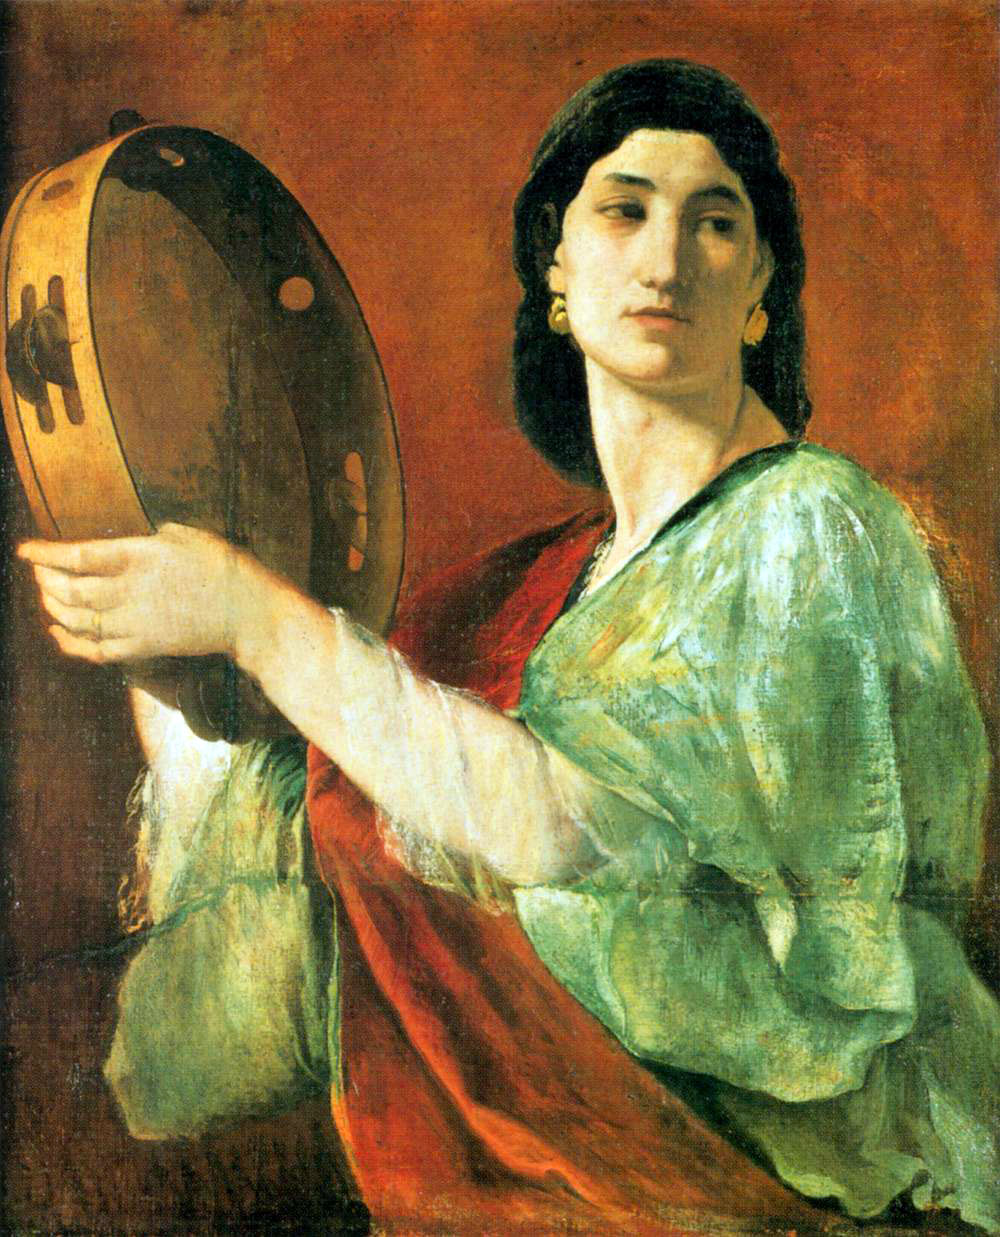 Painting of woman holding up tambourine